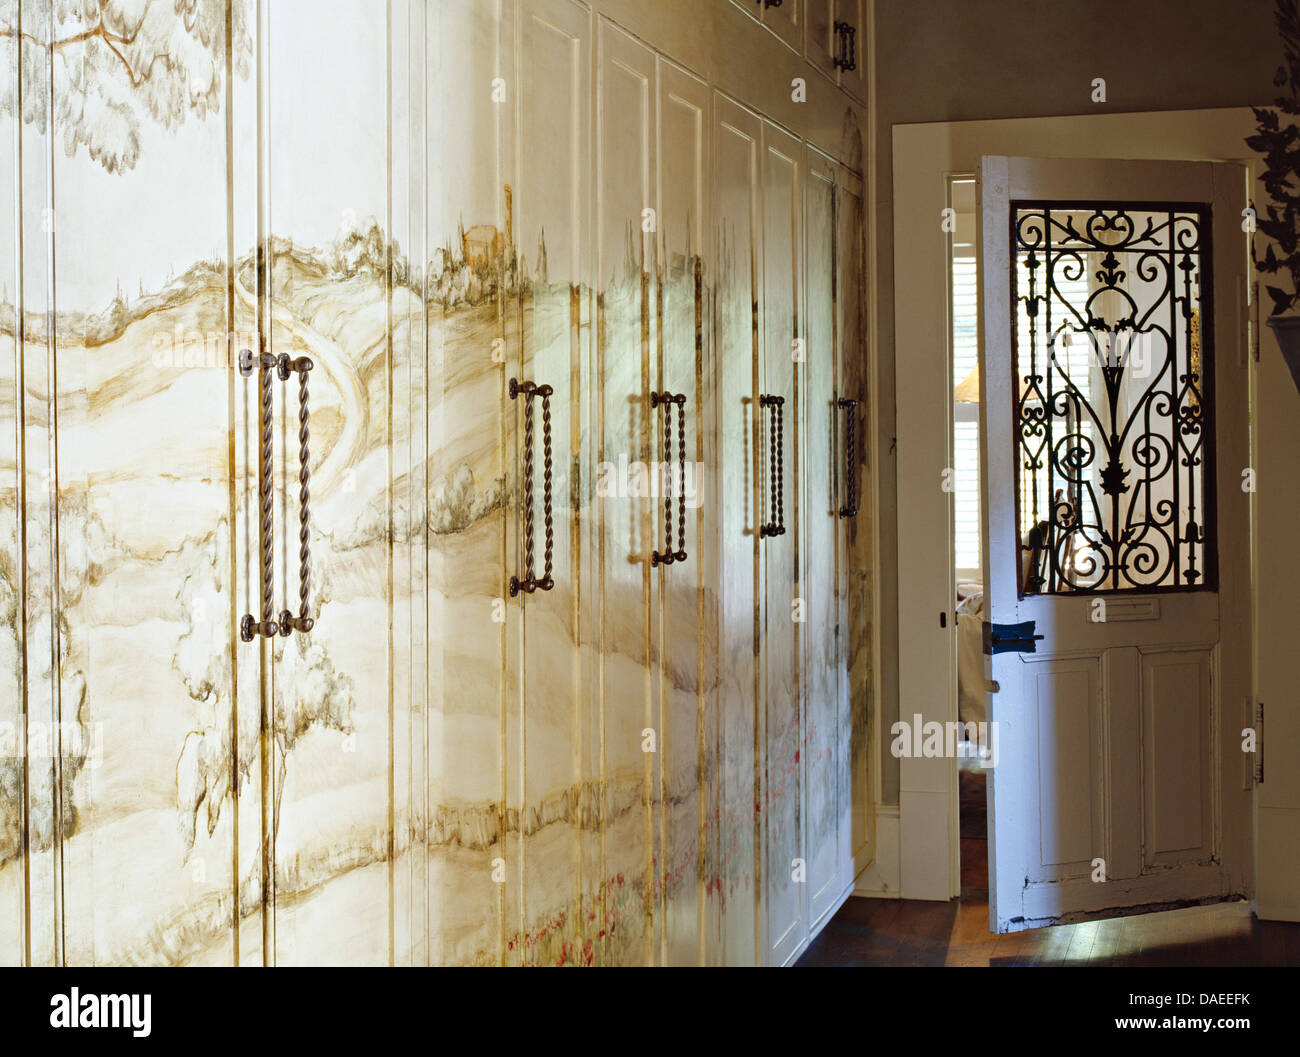 Landscape mural painted on fitted cupboards in hall with ornate landscape mural painted on fitted cupboards in hall with ornate wrought iron grille in door planetlyrics Image collections